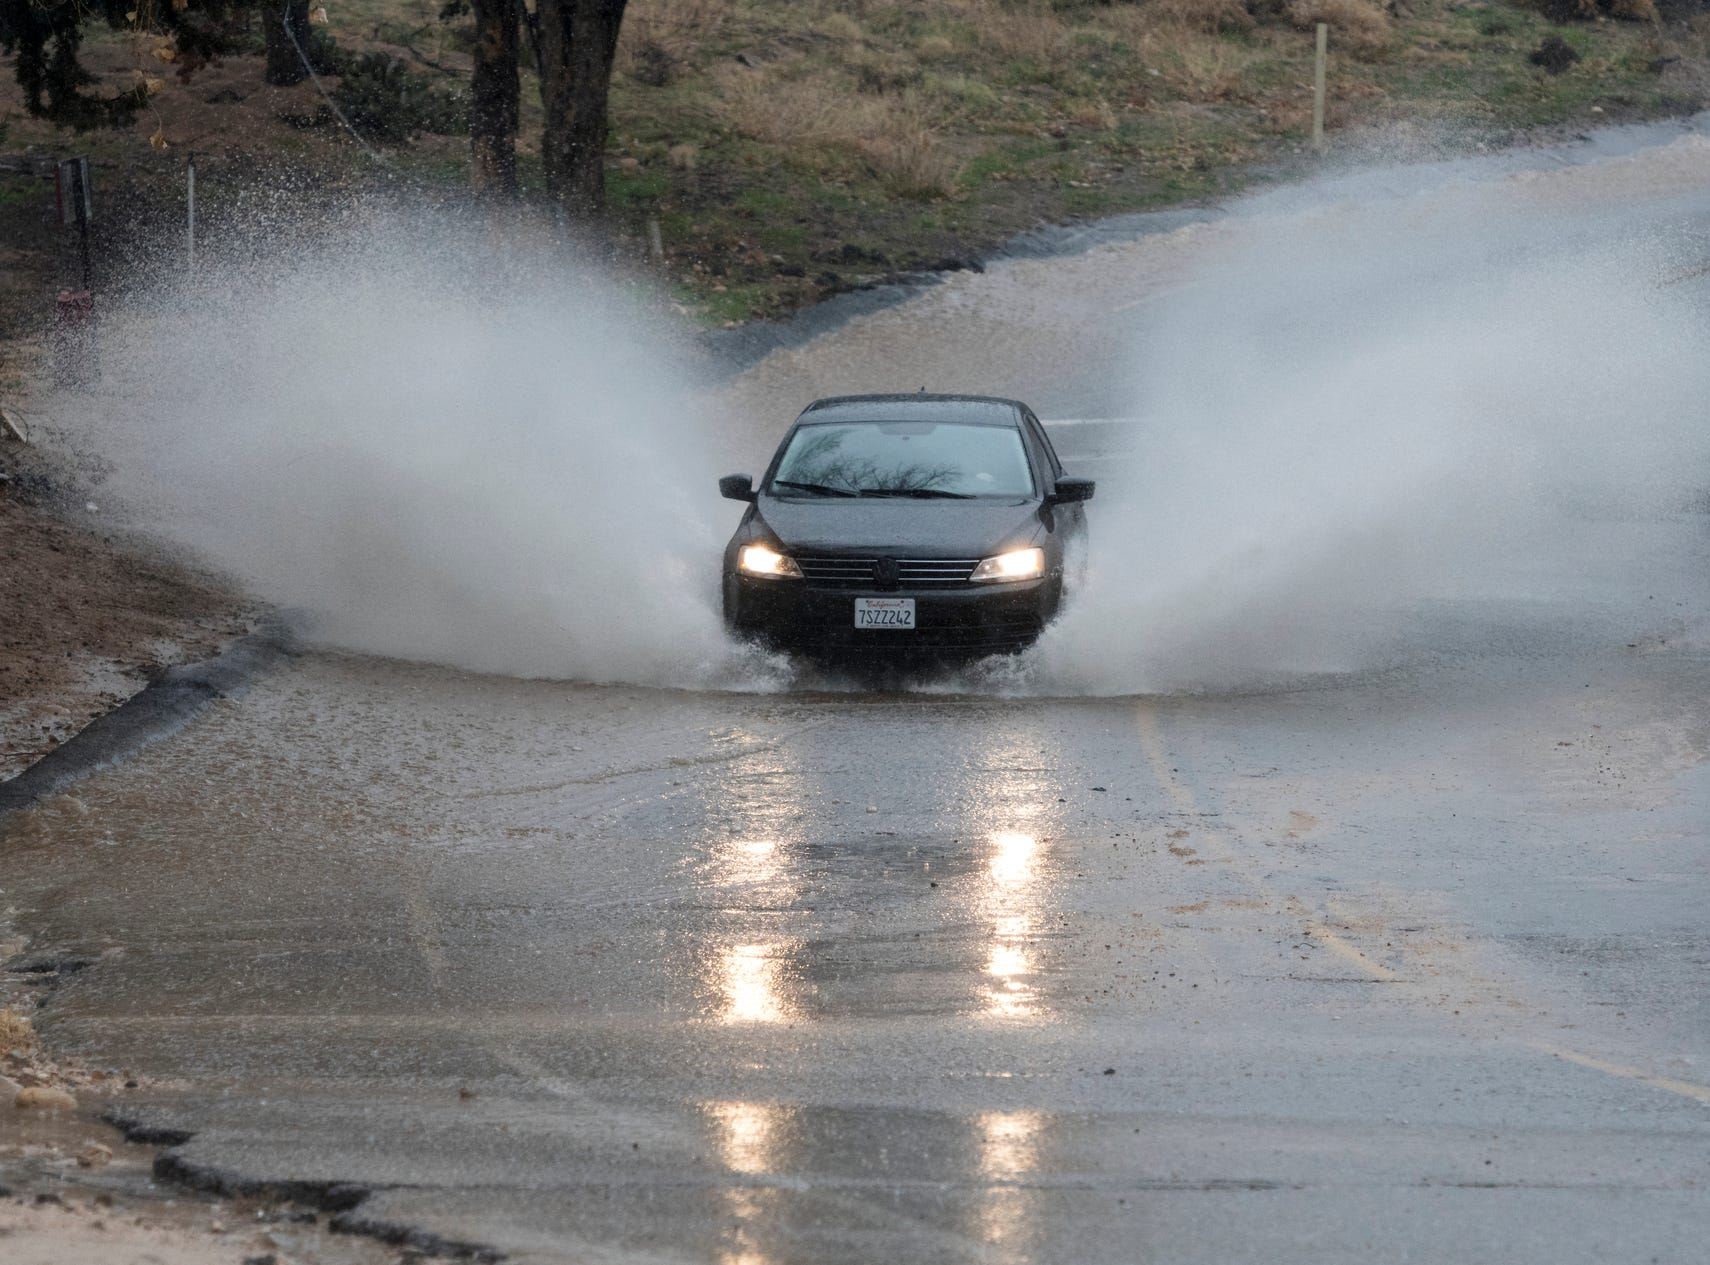 A car hits a deep section of rain run off along Peach Avenue in Hesperia, Calif., Thursday, Jan. 17, 2019.